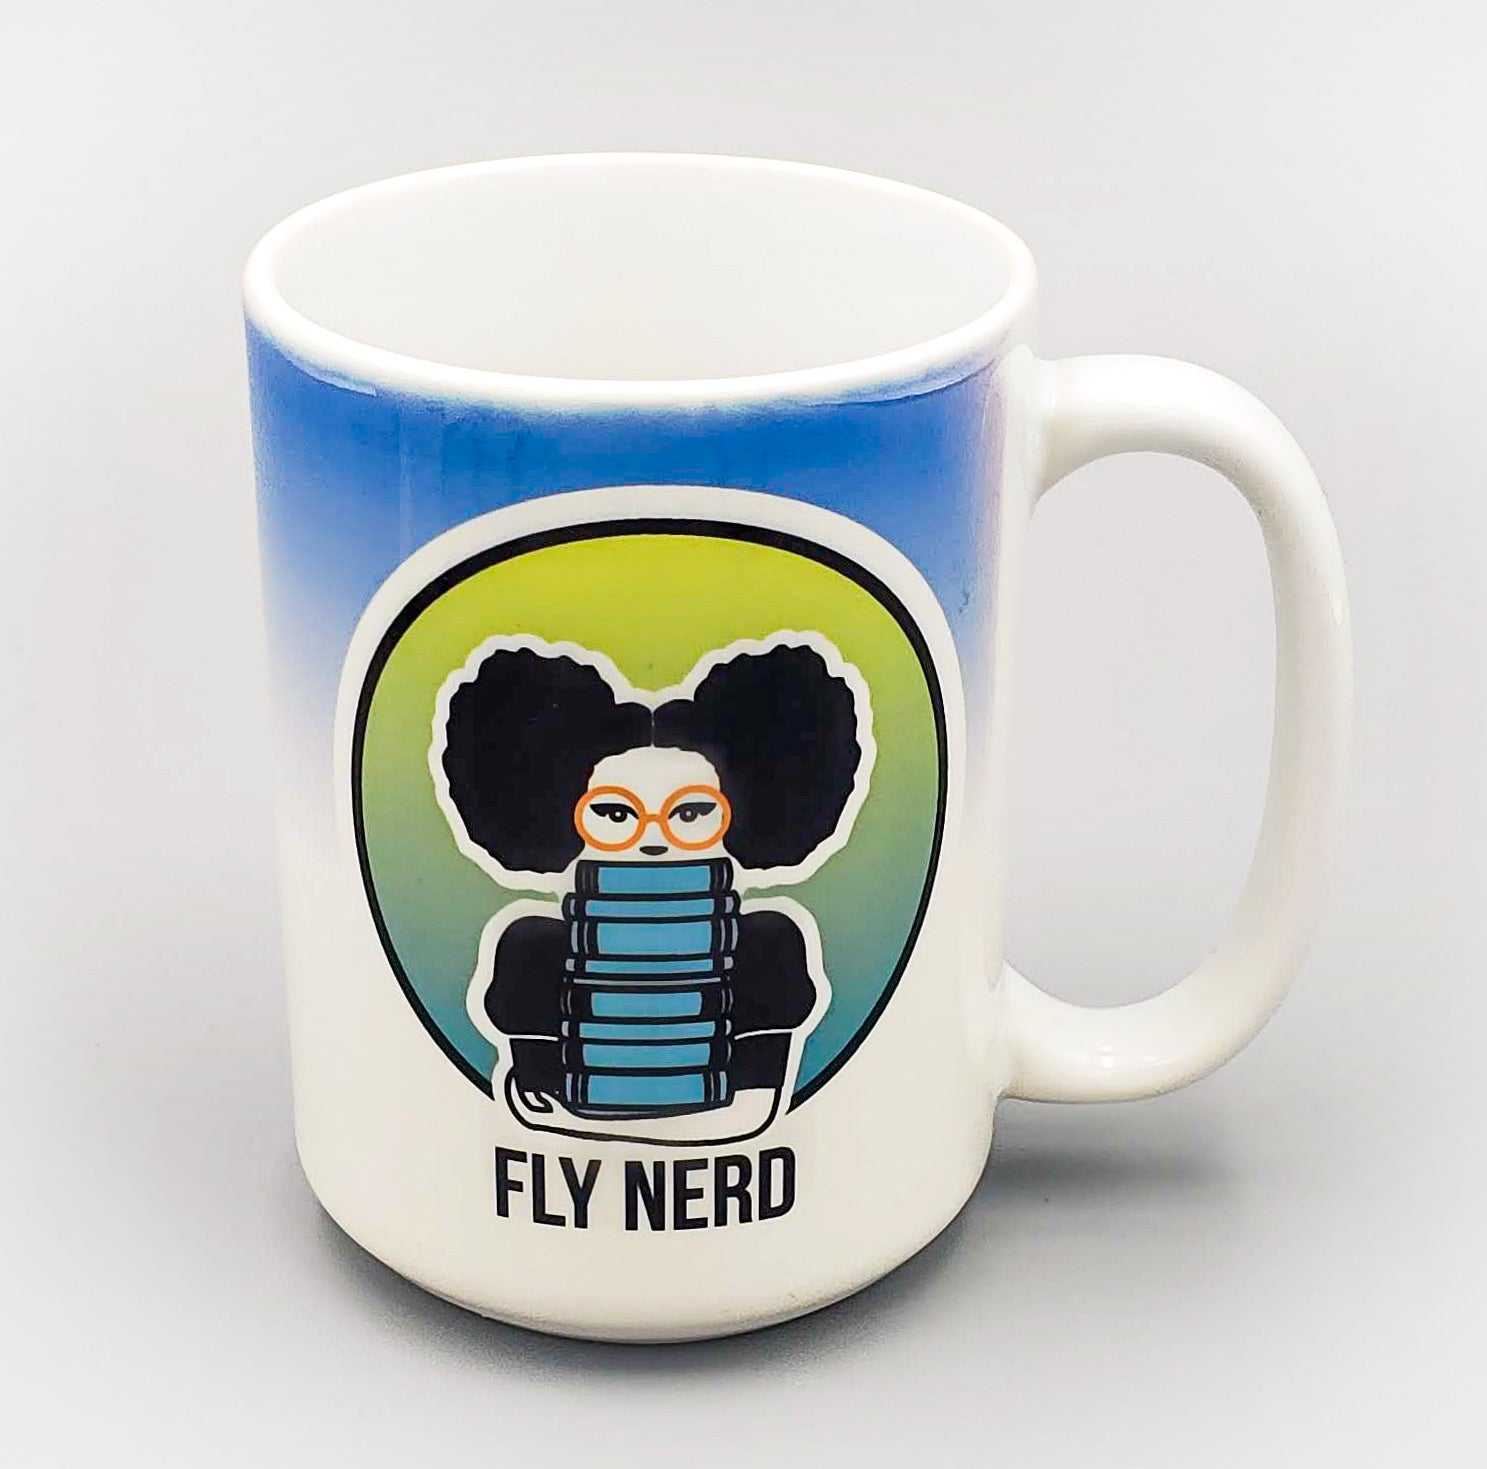 Fly Nerd Ceramic 15 oz Mug